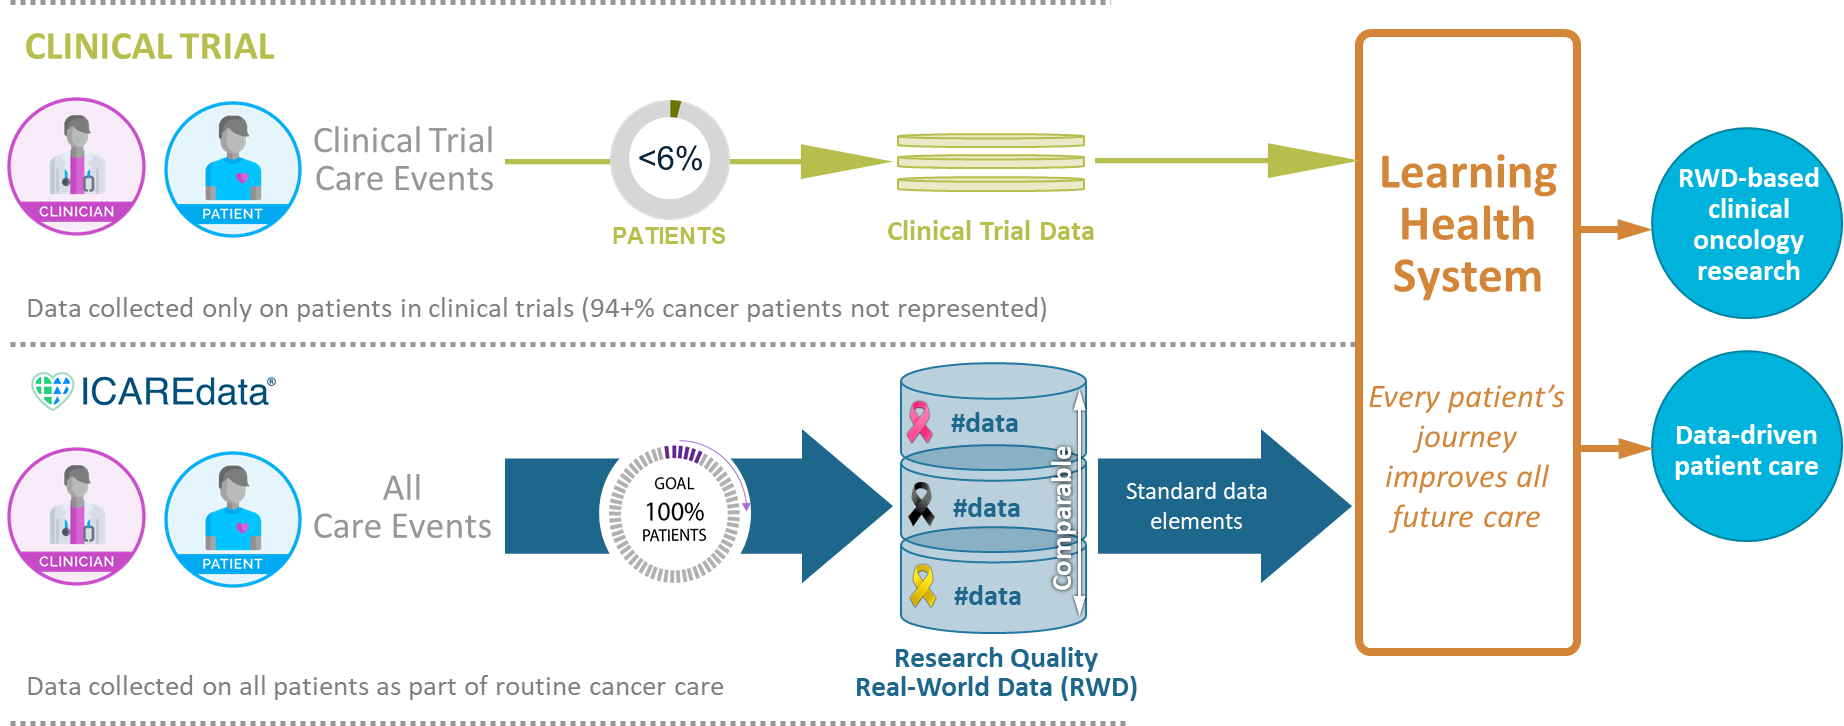 Diagram showing how ICAREdata® project supports the collection of high quality, mCODE based real-world data to enable clinical oncology research and contribute to a learning health system.